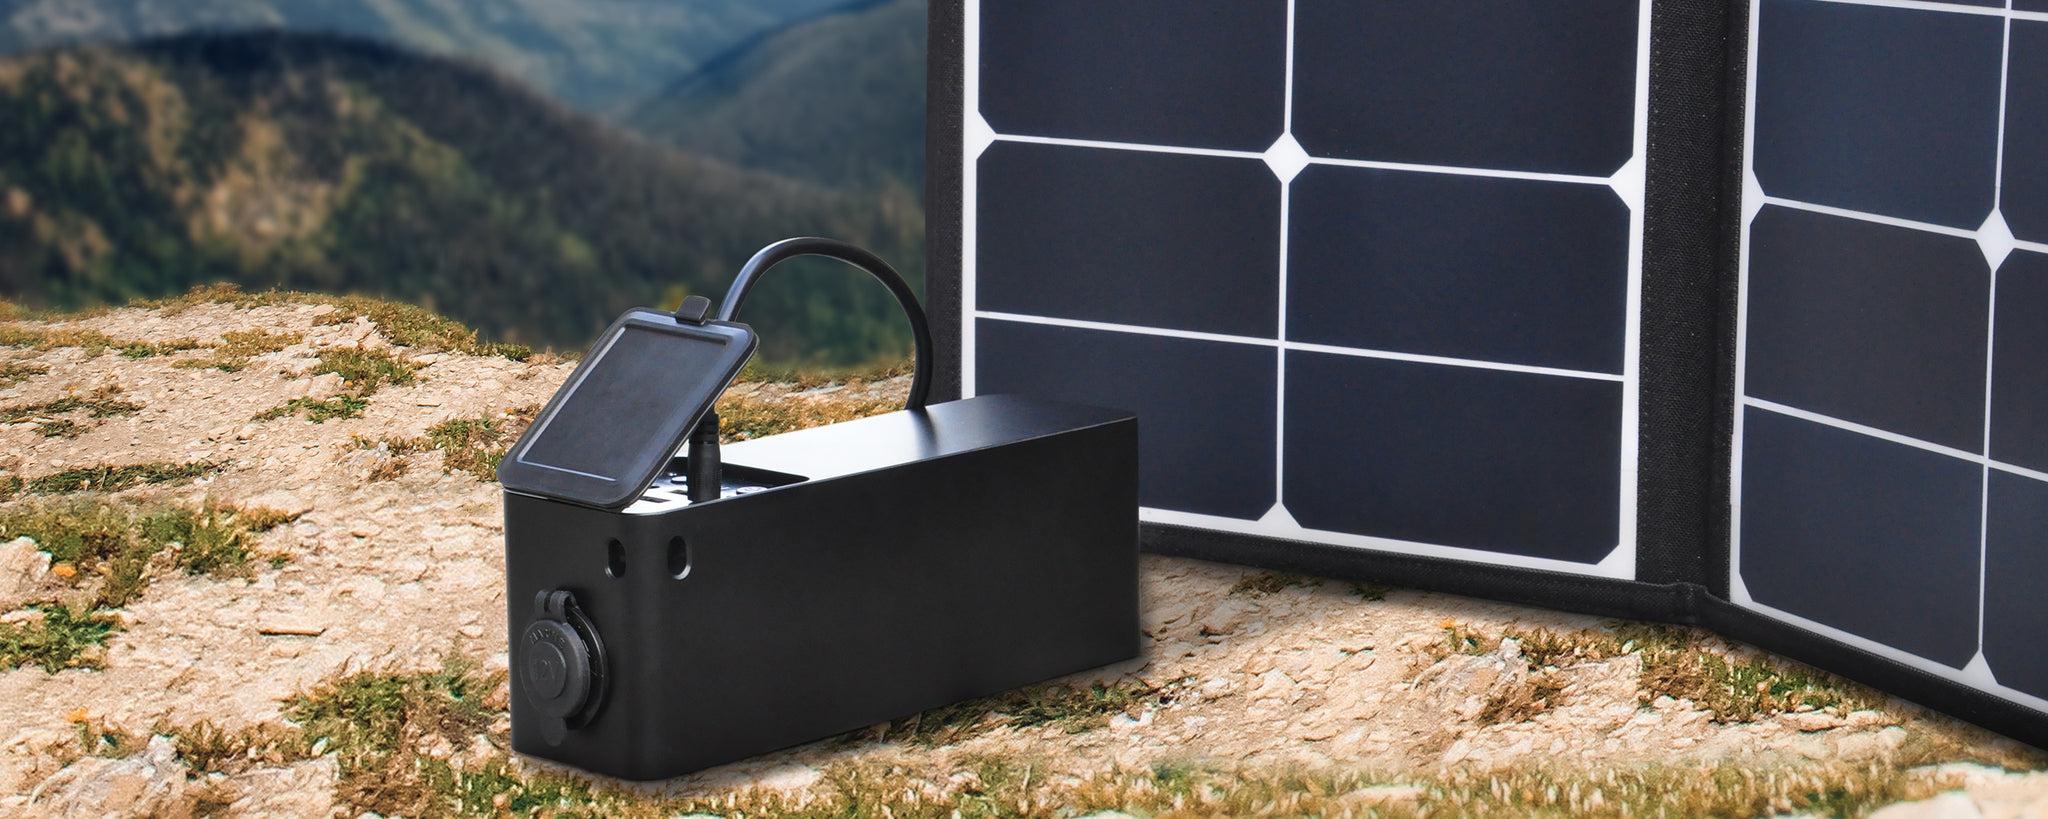 solar charger power source portable for home outdoors